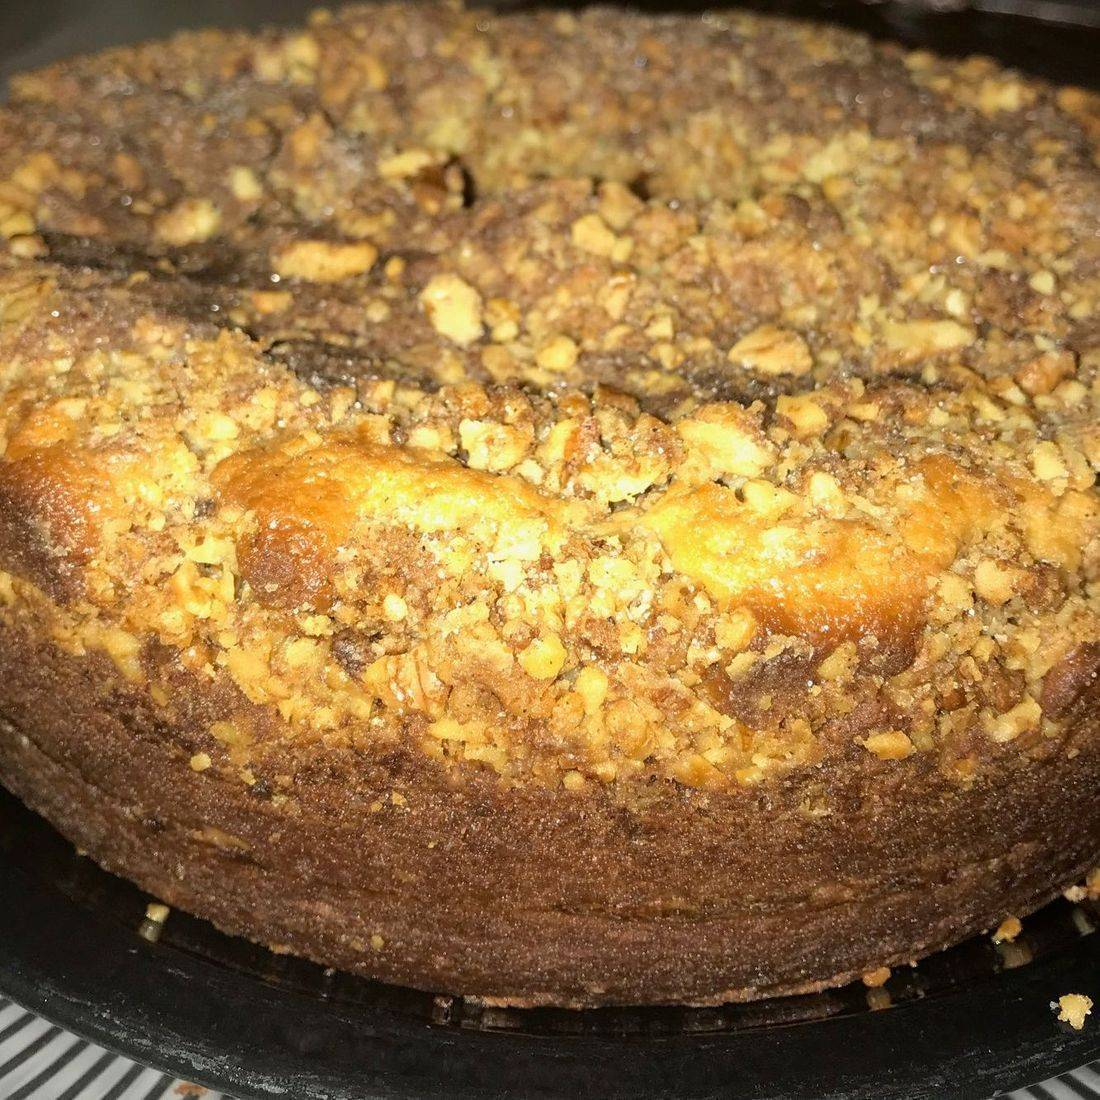 Great-grandmother's recipe for delicious, old-fashioned huge mouth-watering coffee cake. A decadent, delightful layer of toasted walnuts, butter, and spices in the middle of this cake and covered in walnuts and dusted with organic spices. Made with mostly organic ingredients. Moist, fragrant, full of organic butter, sour cream, toasted walnuts, spices, eggs, brown sugars and lots of loving care to make an absolutely decadent, southern pound cake that is can be an excellent marriage partner for your rich coffee. May be frozen for up to 2 months if properly wrapped.